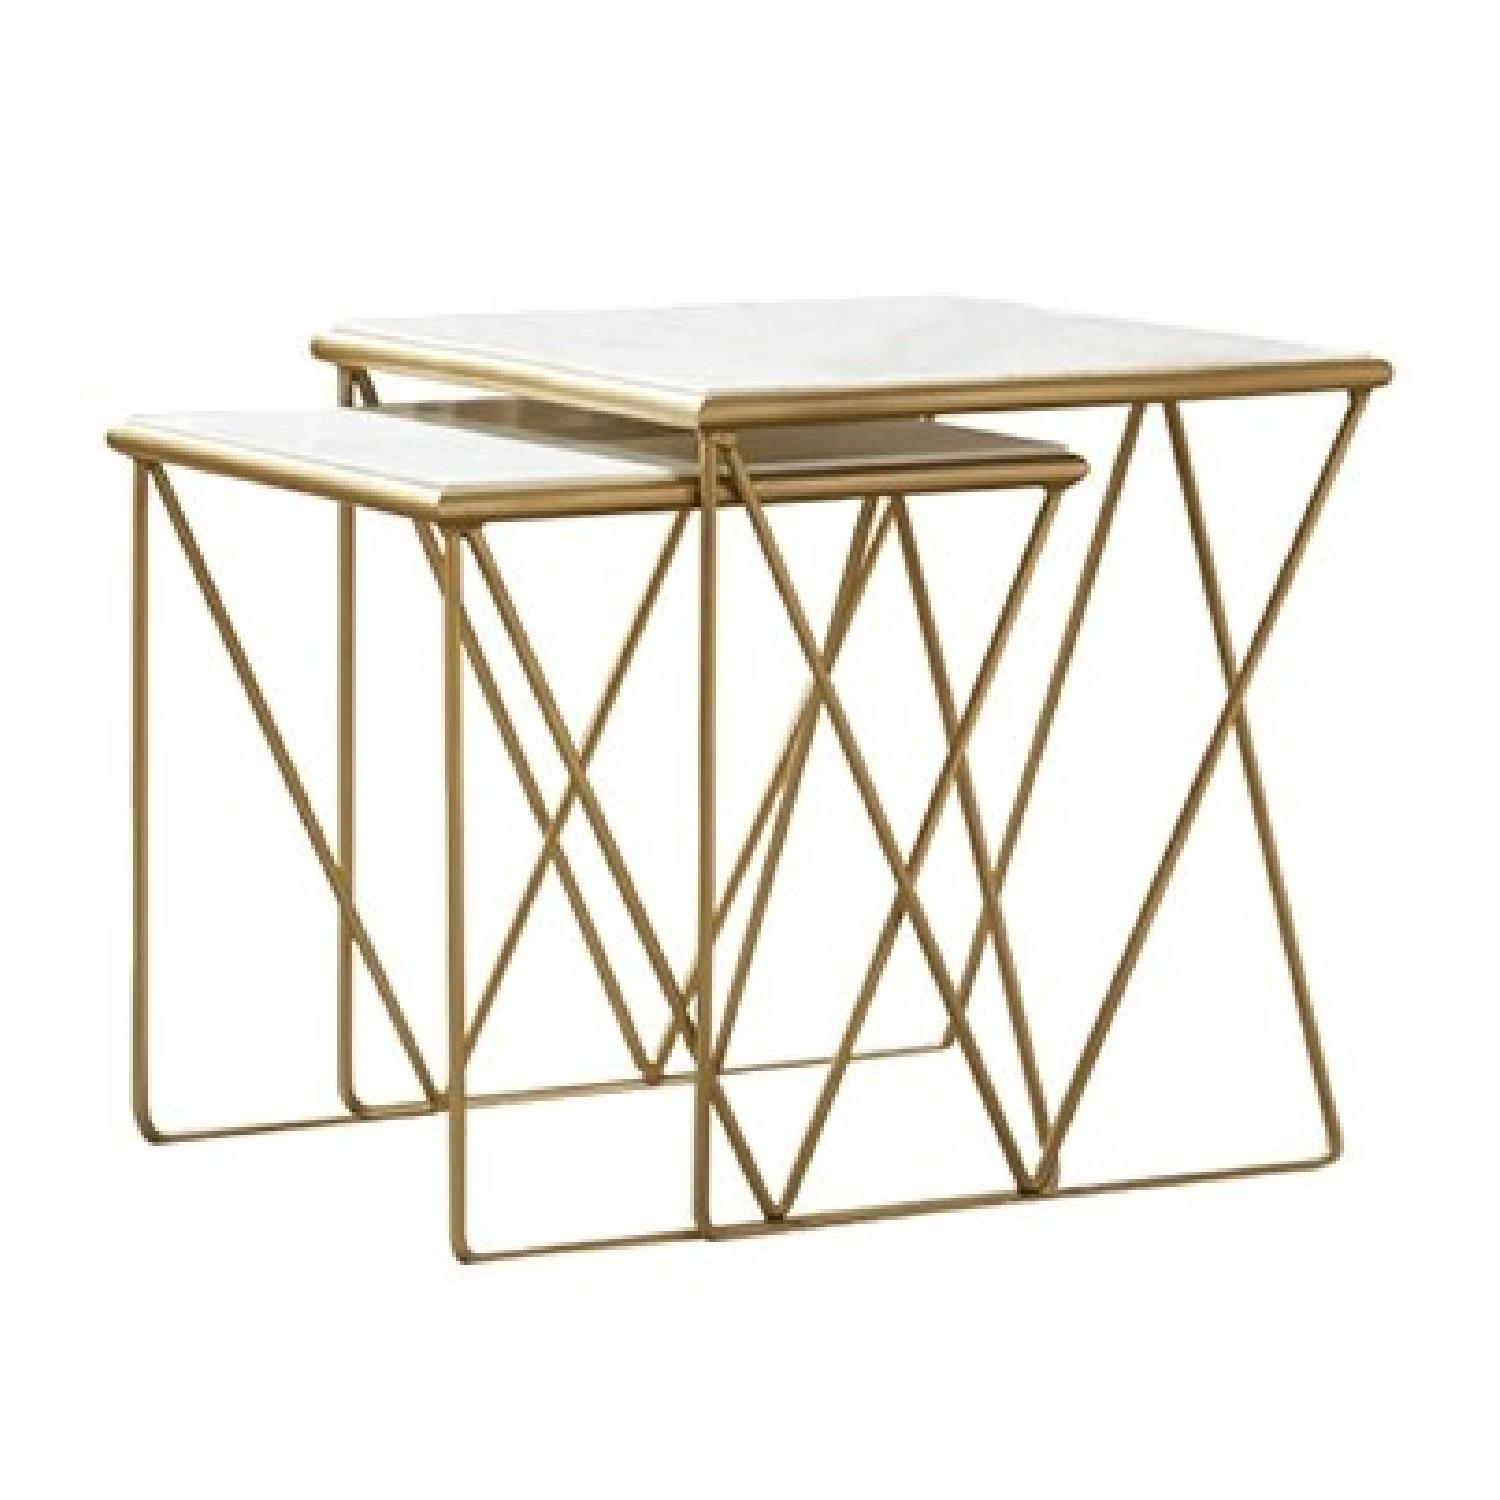 2-Piece Nesting Tables w/ Marble Top & Gold Chrome Base